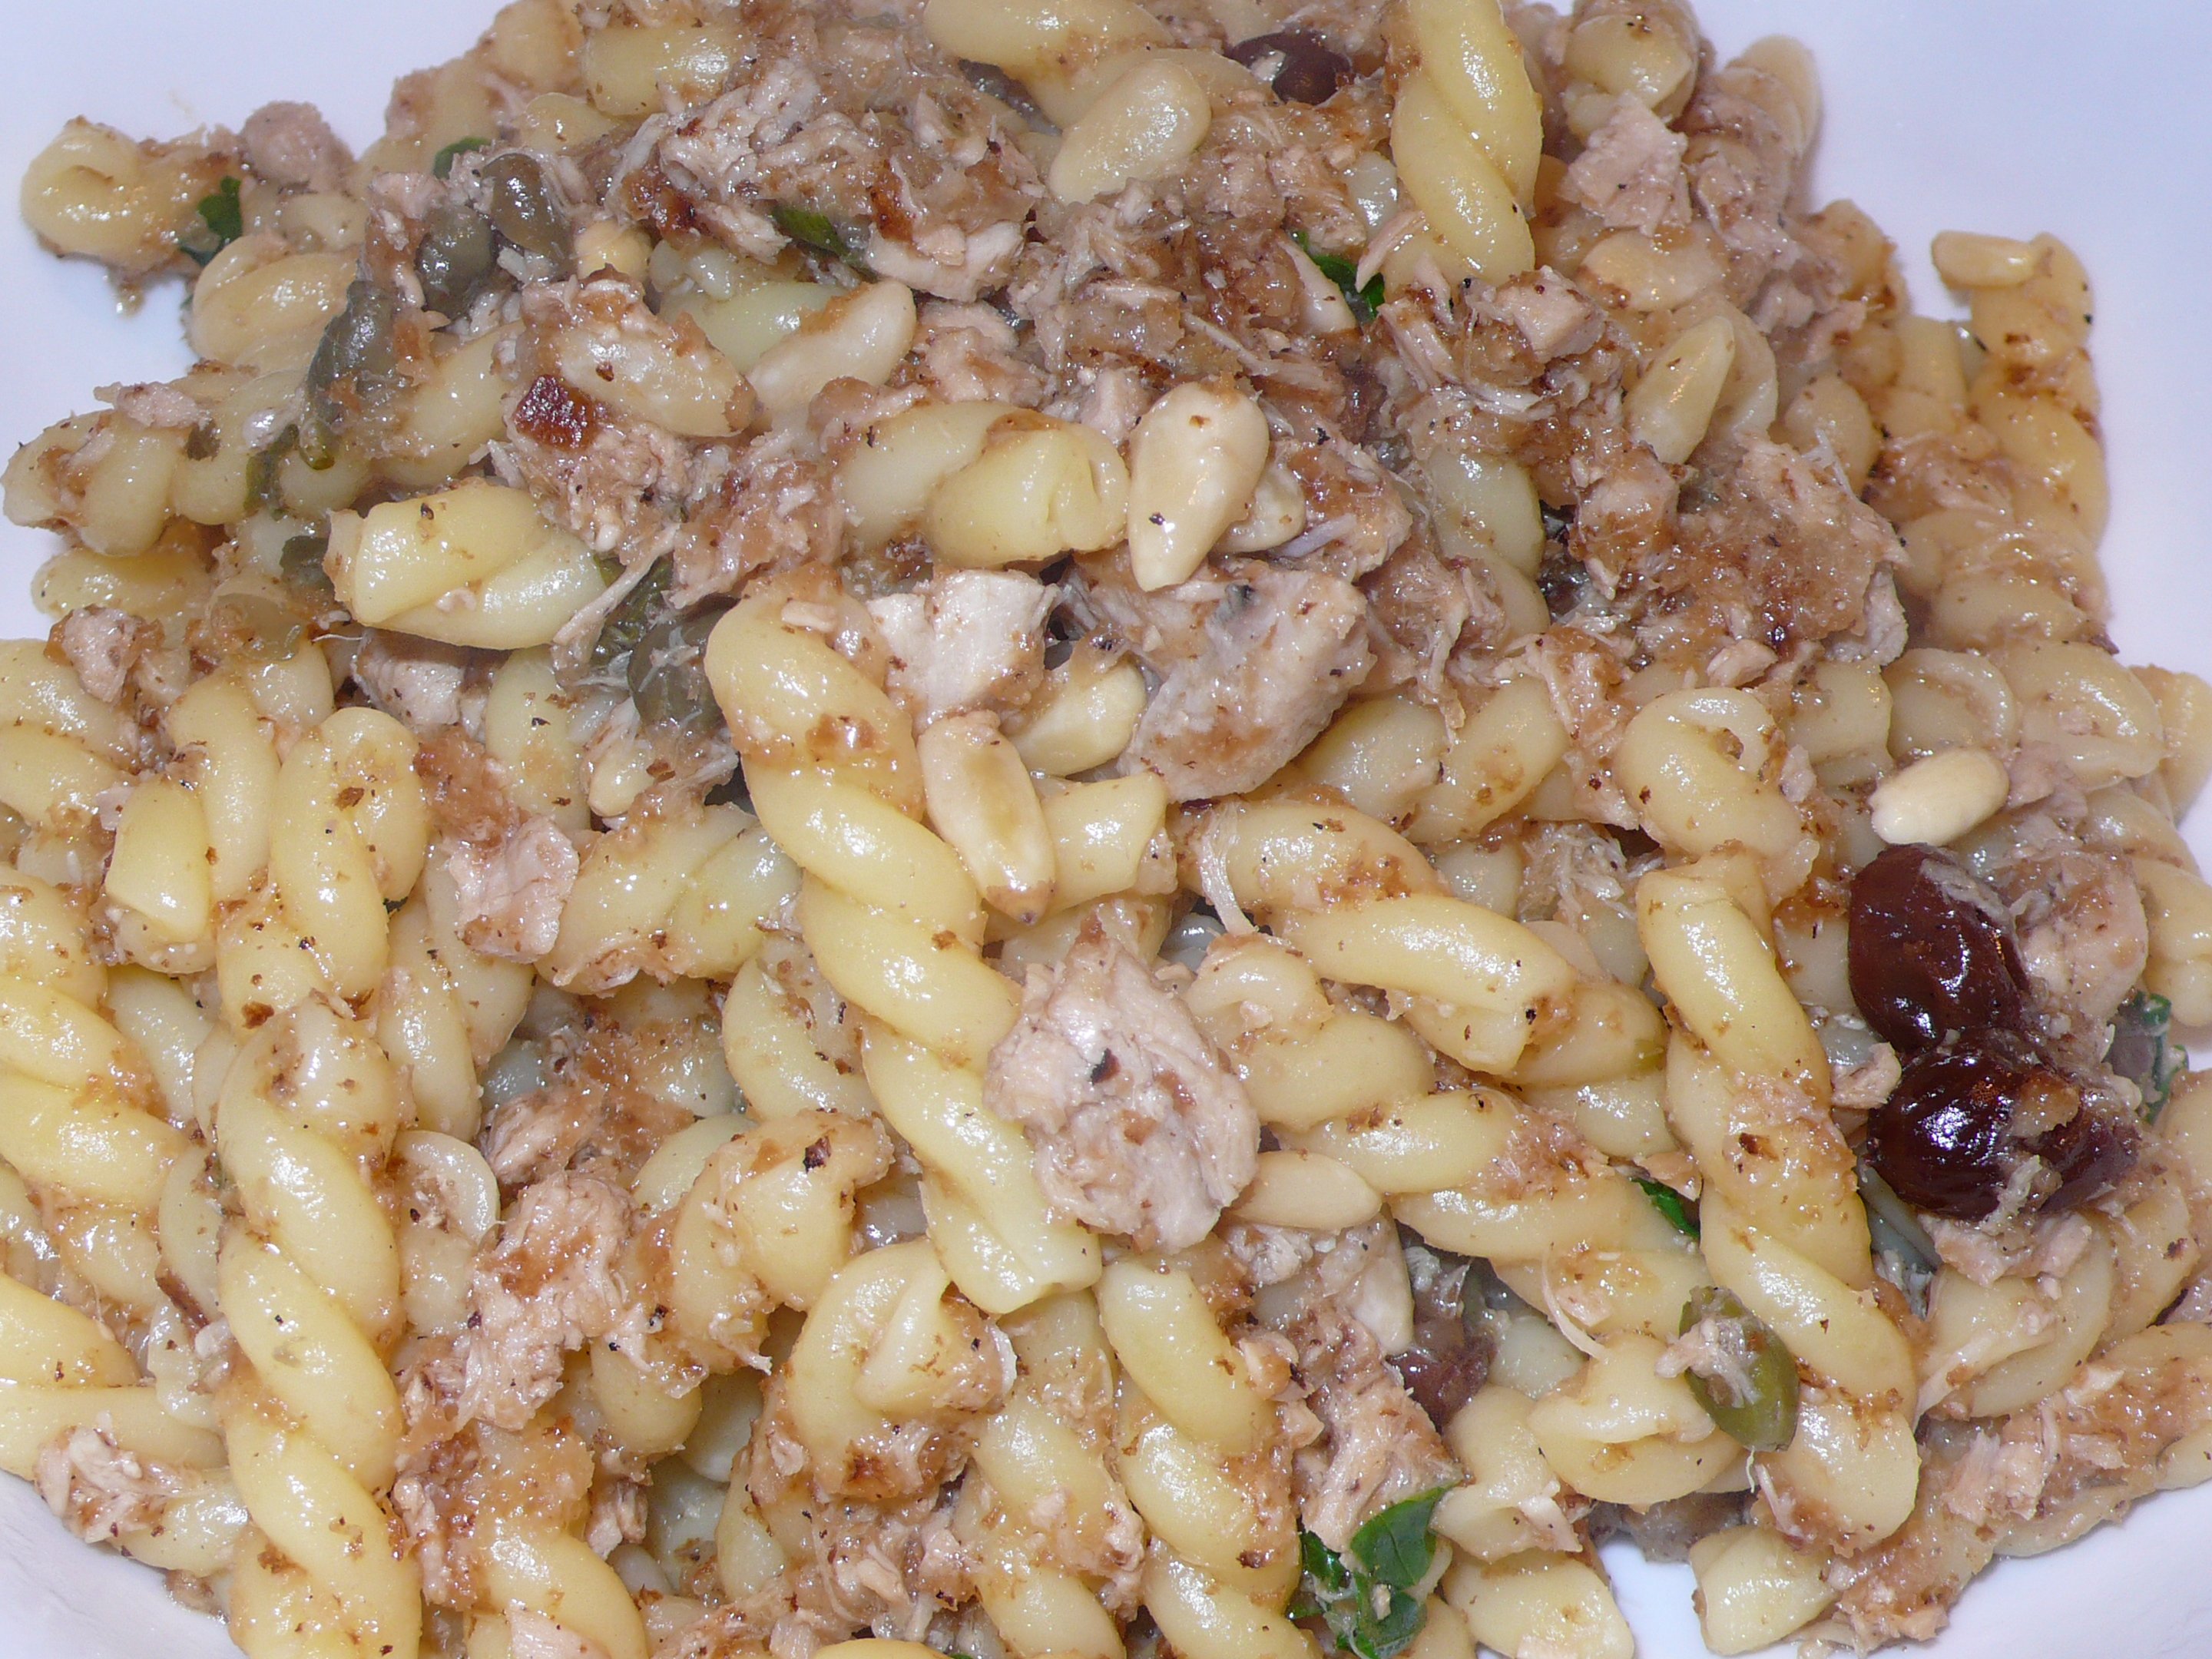 gemelli with tuna, raisins, pine nuts and capers topped with toasted bread crumbs